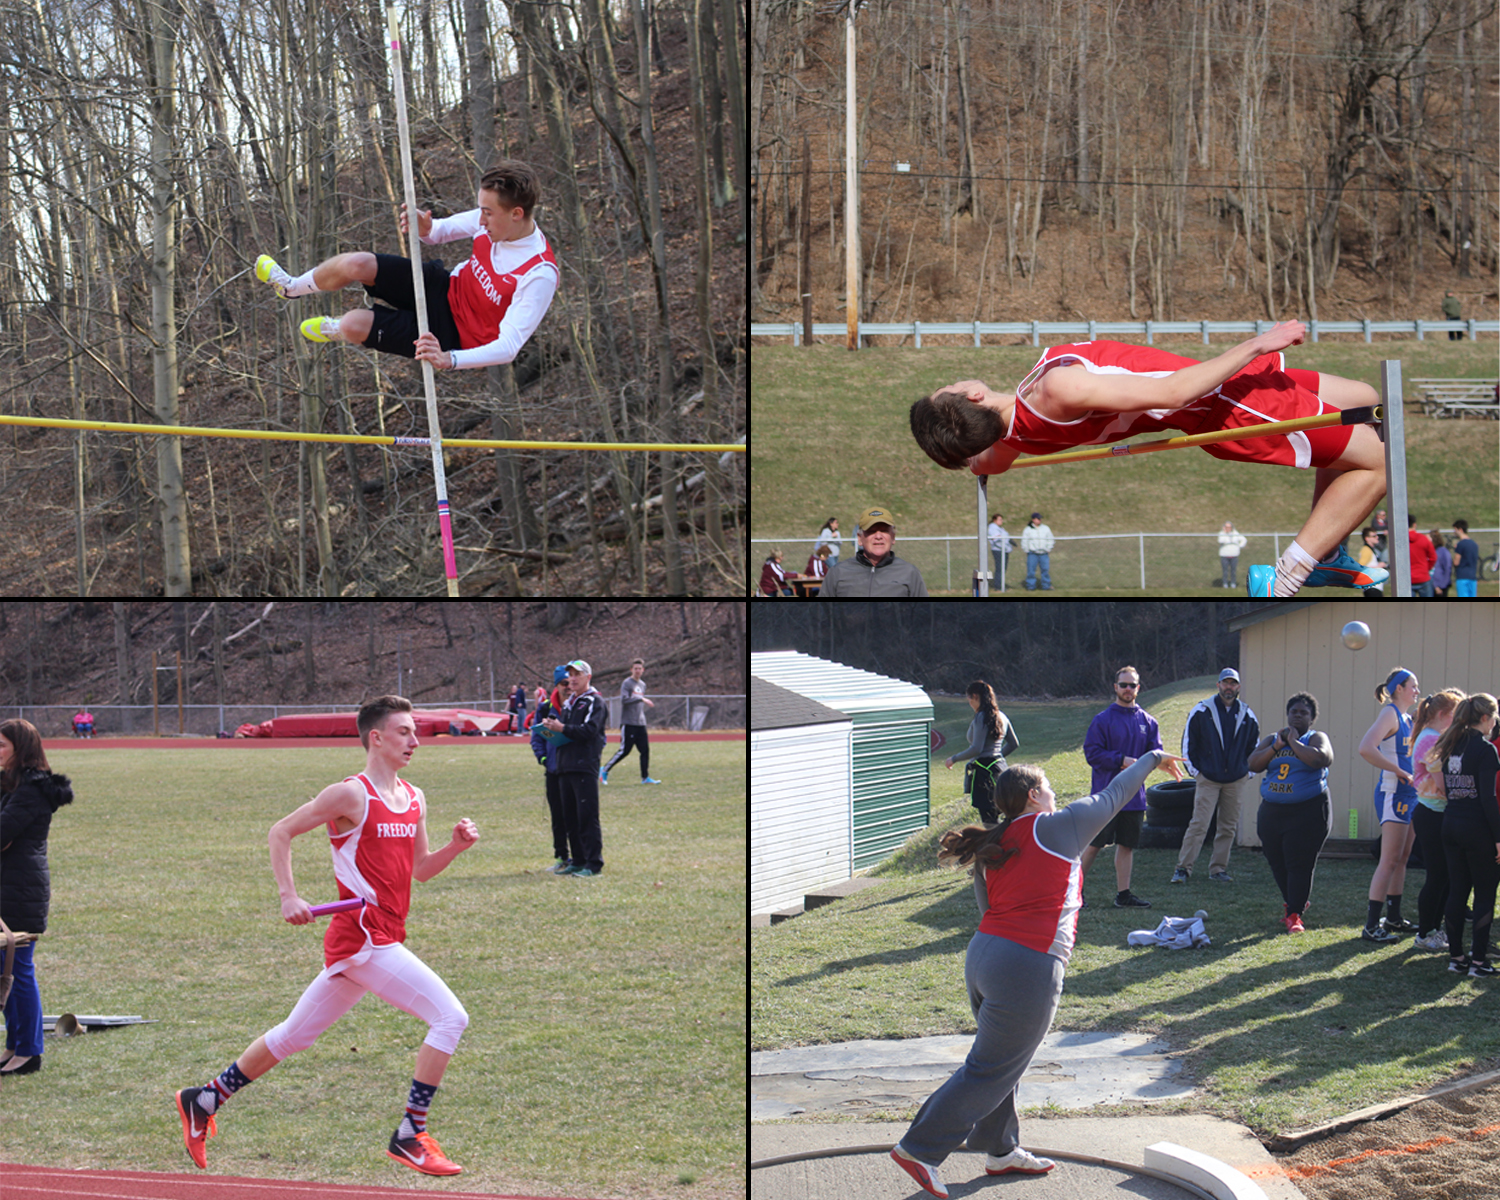 Seniors Ryan Linedeck (top left), Benjamin Wright (top right), Haley Velemirovich (bottom right) and junior Ethan Paxton (bottom left) were some of the many Freedom athletes who attended and competed in the scrimmage at Beaver on March 19.